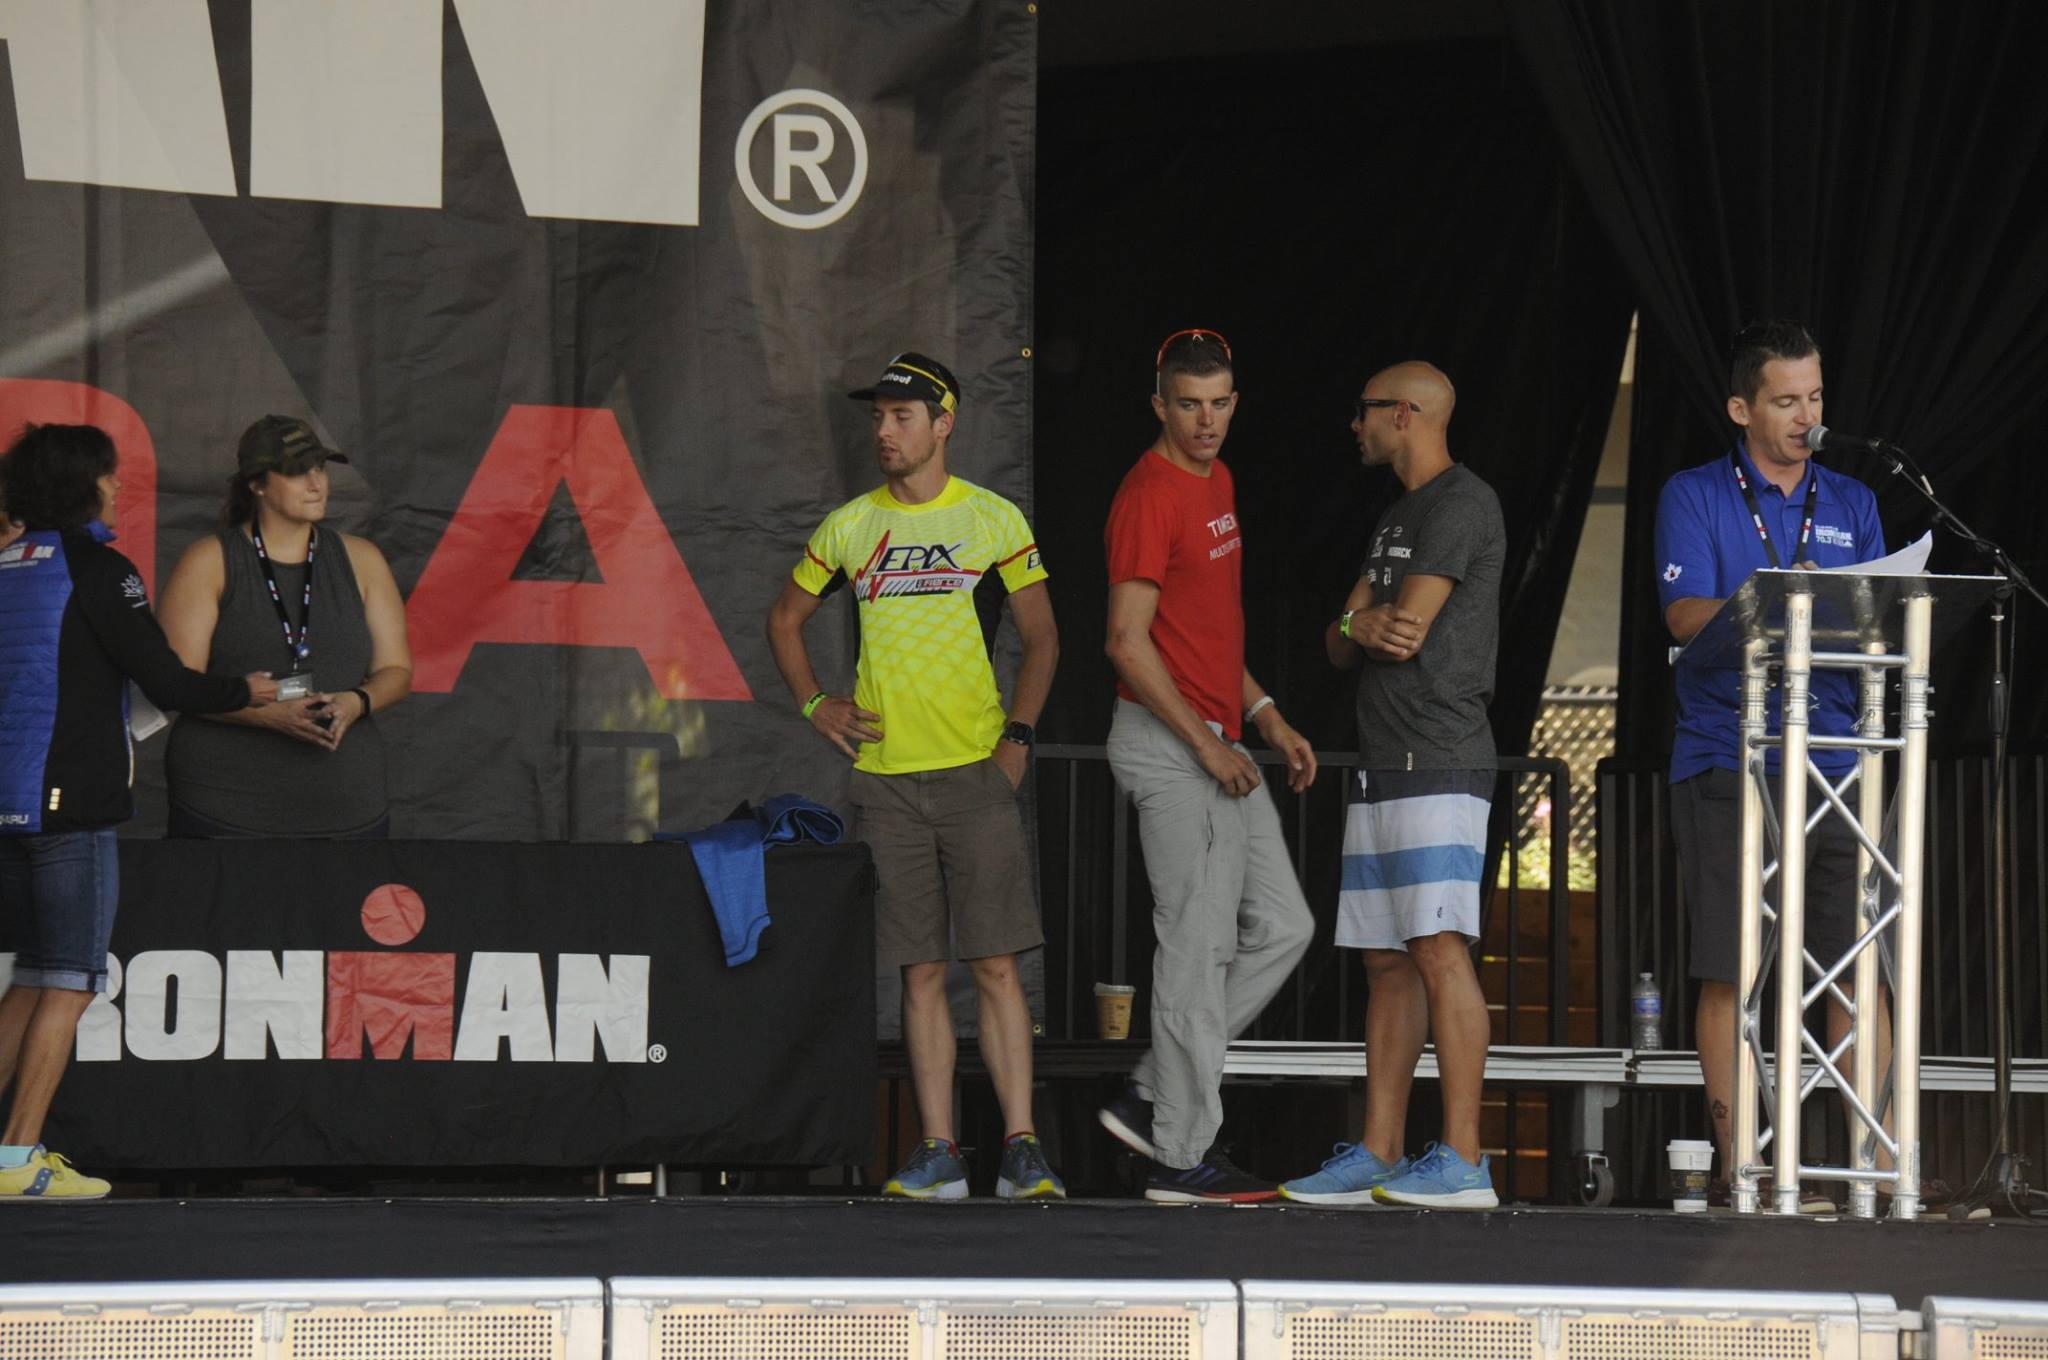 Coach_Terry_Wilson_Pursuit_of_The_Perfect_Race_Adam_Feigh_IRONMAN_Chattanooga_7.jpg